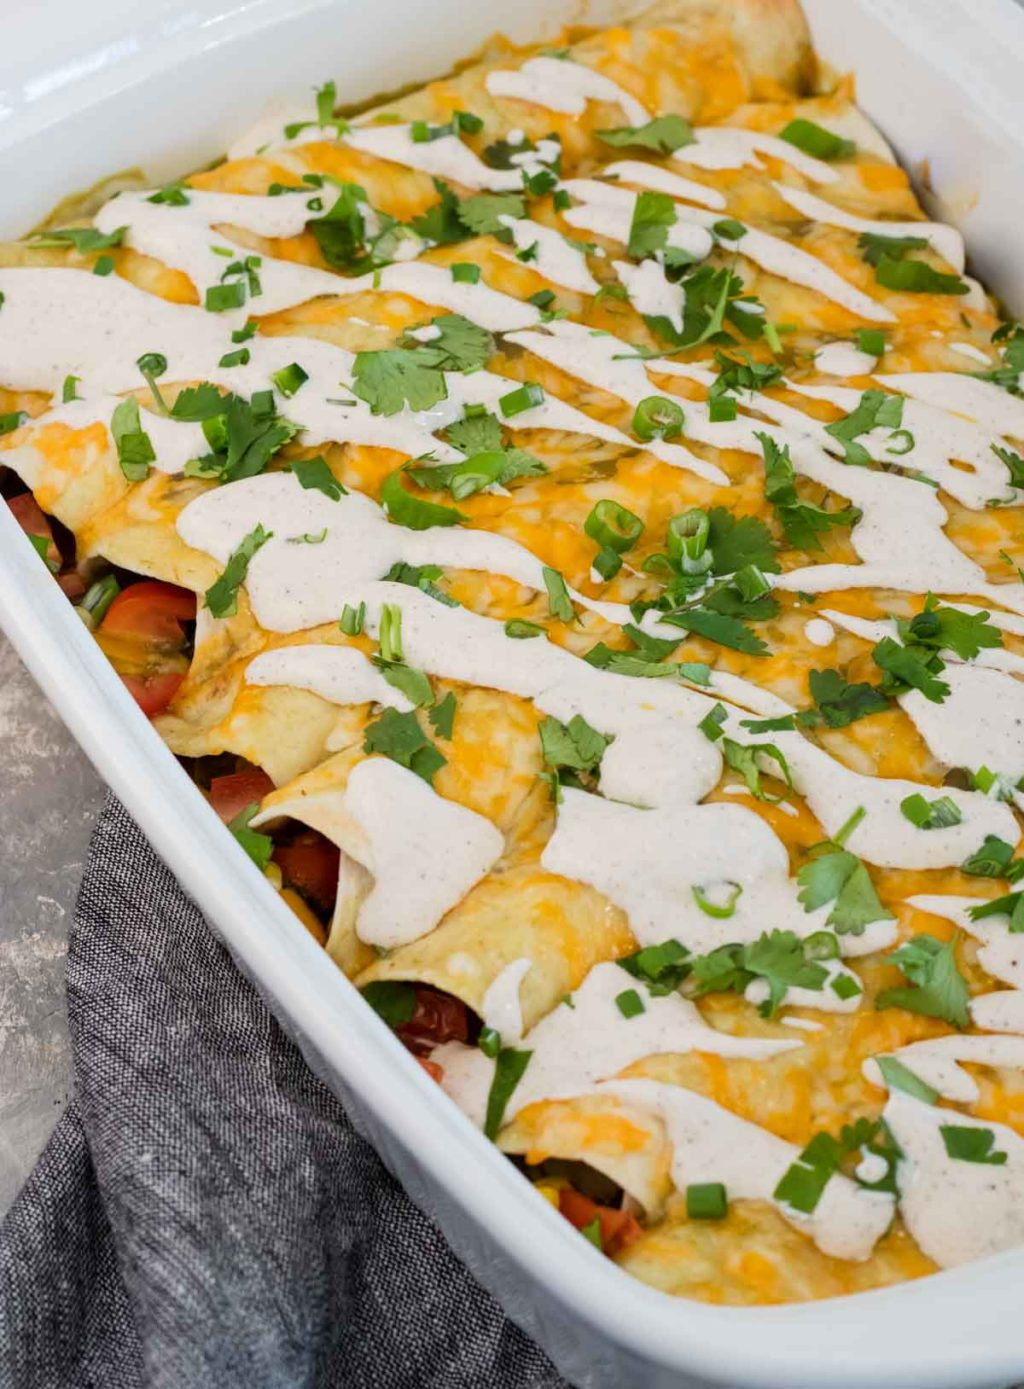 Veggie Enchiladas topped with Chili Lime Crema in a white glass baking dish